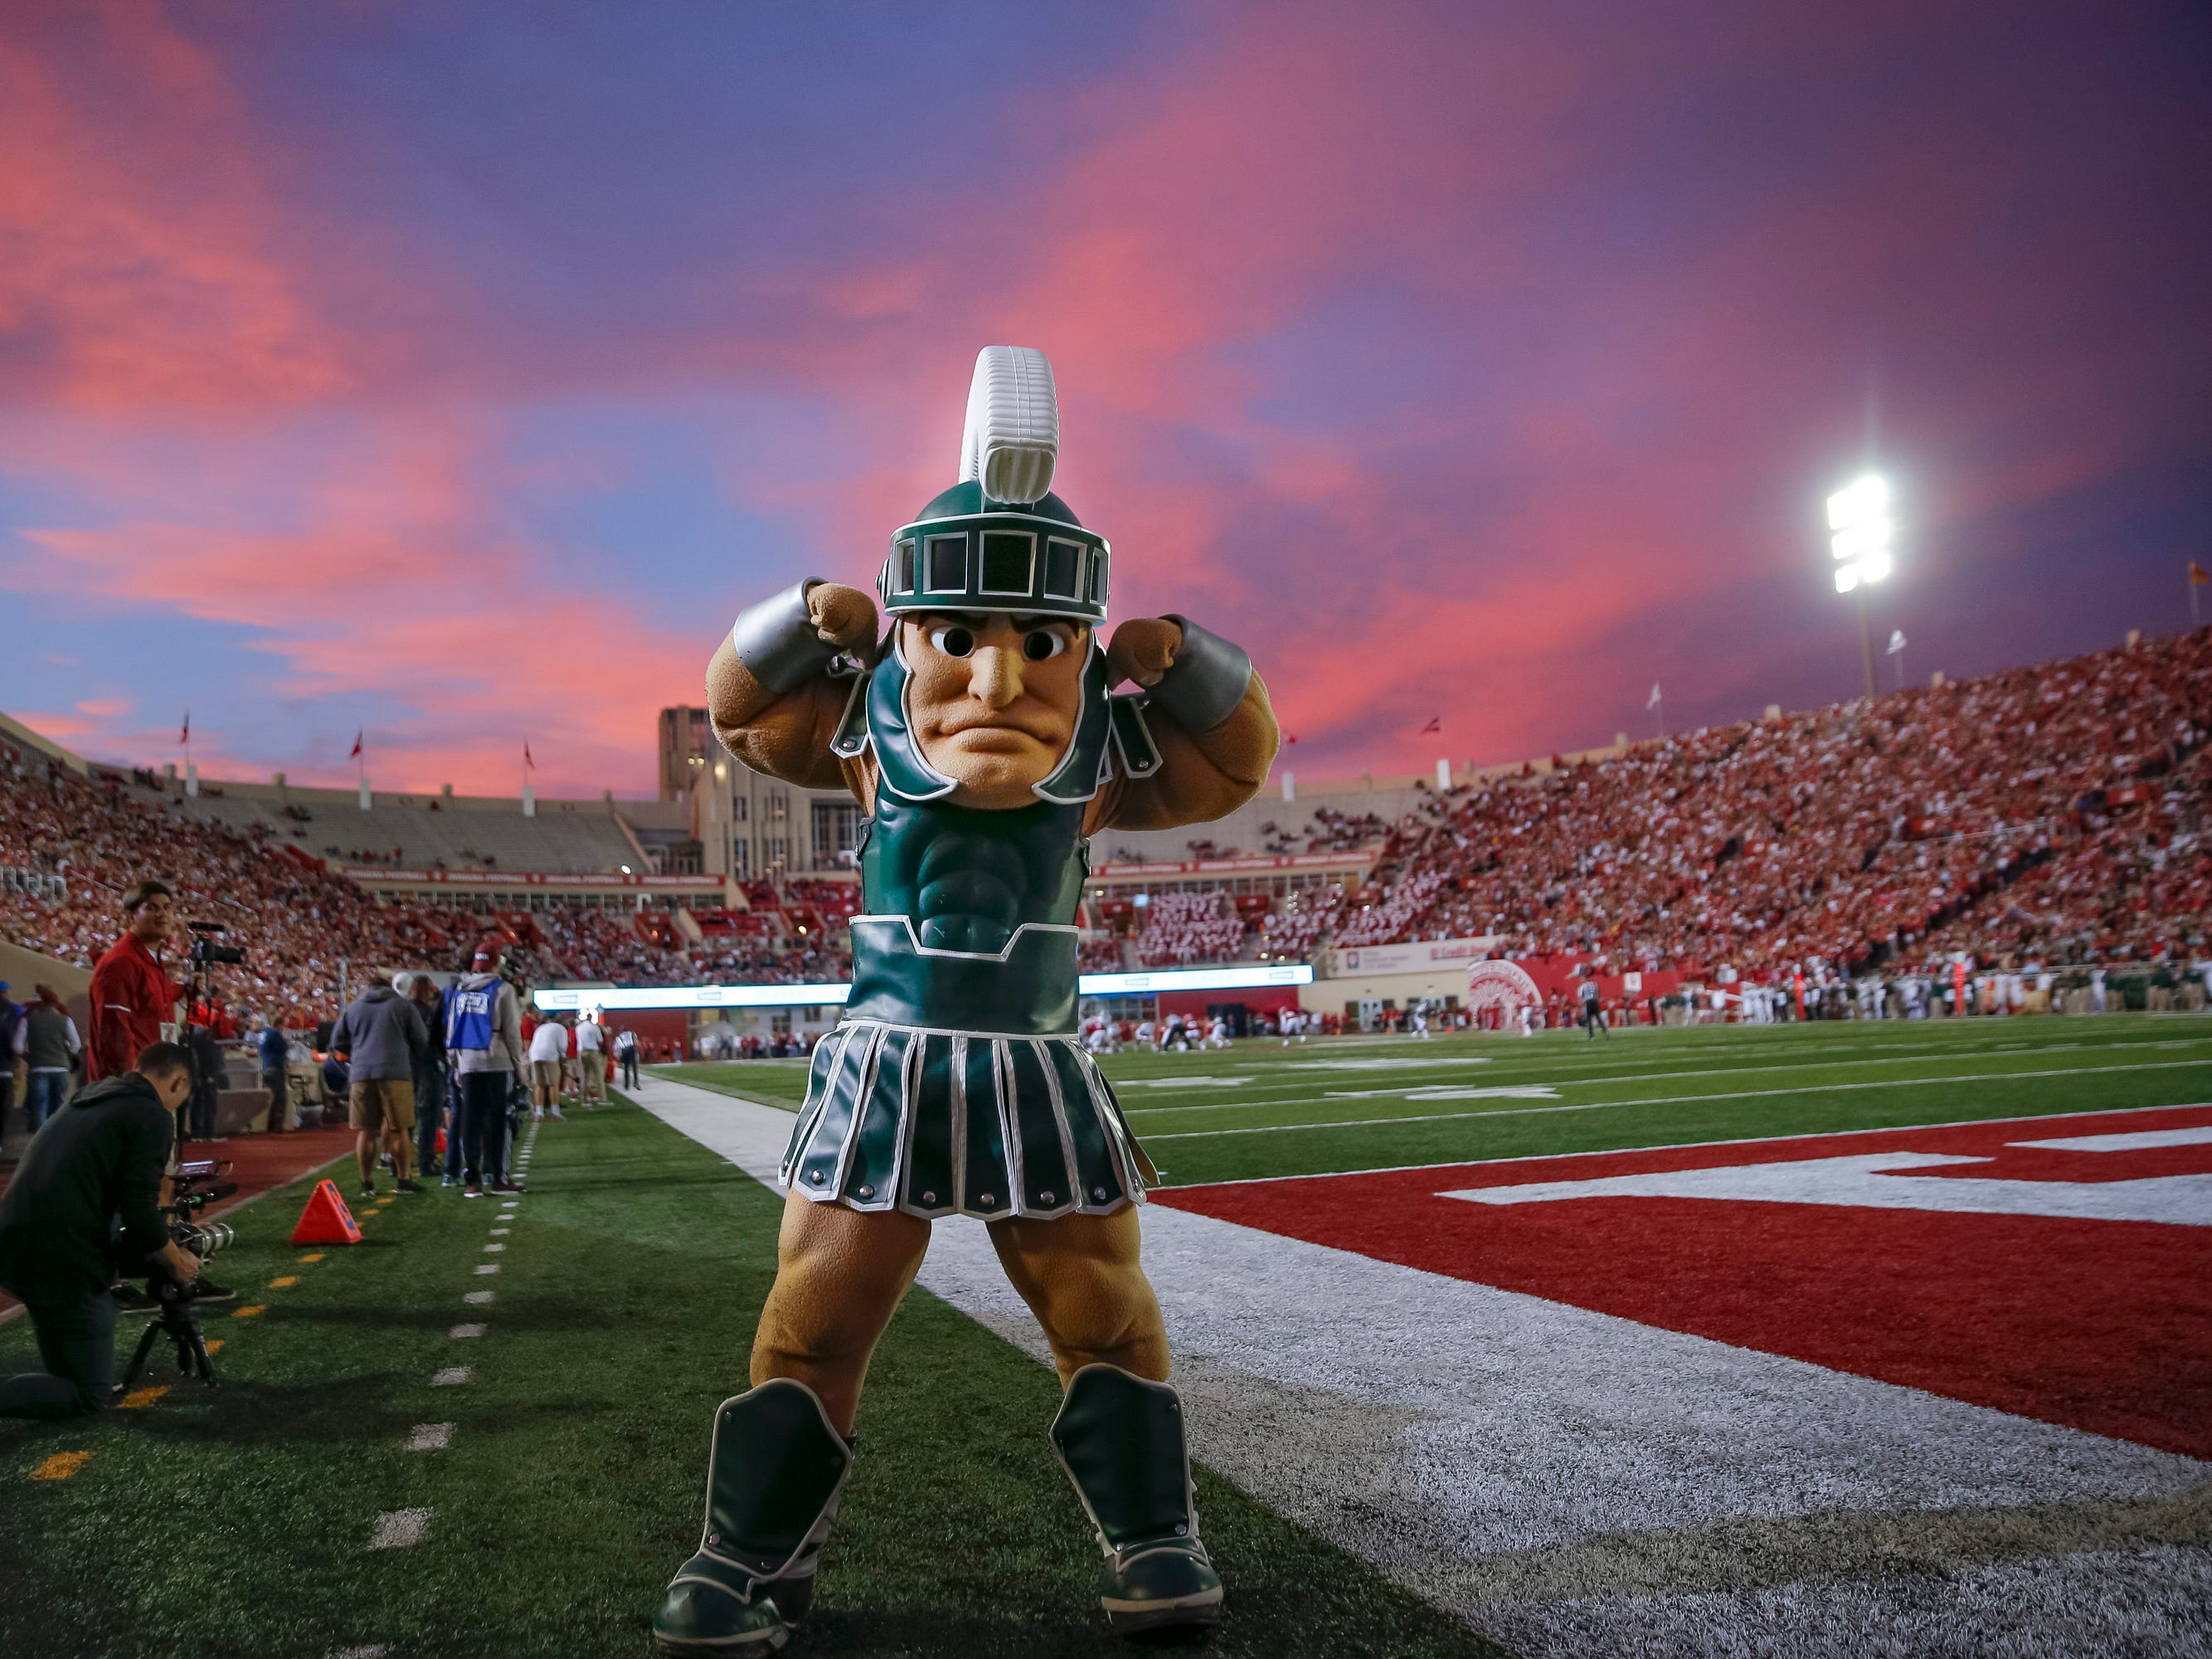 The Michigan State Spartans mascot Sparty flexes during the game against the Indiana Hoosiers at Memorial Stadium on September 22, 2018 in Bloomington, Indiana.